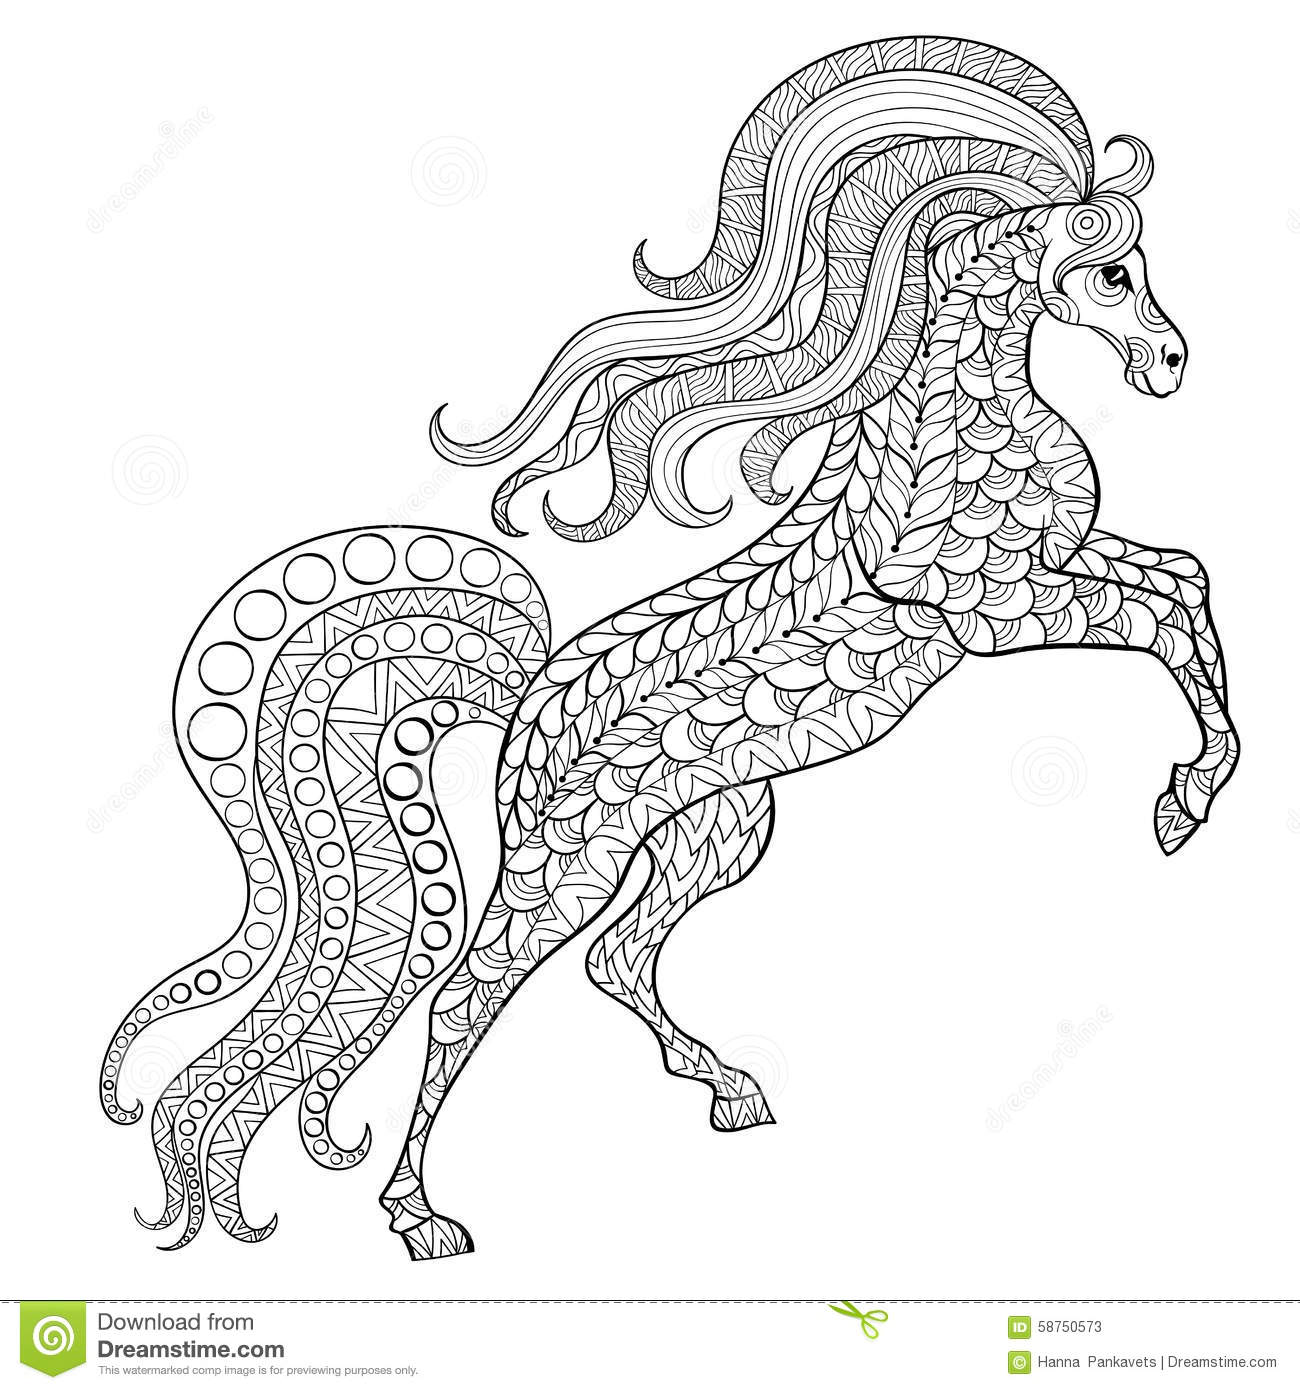 Abstract Horse Coloring Pages : Hand drawn horse for antistress coloring page with high